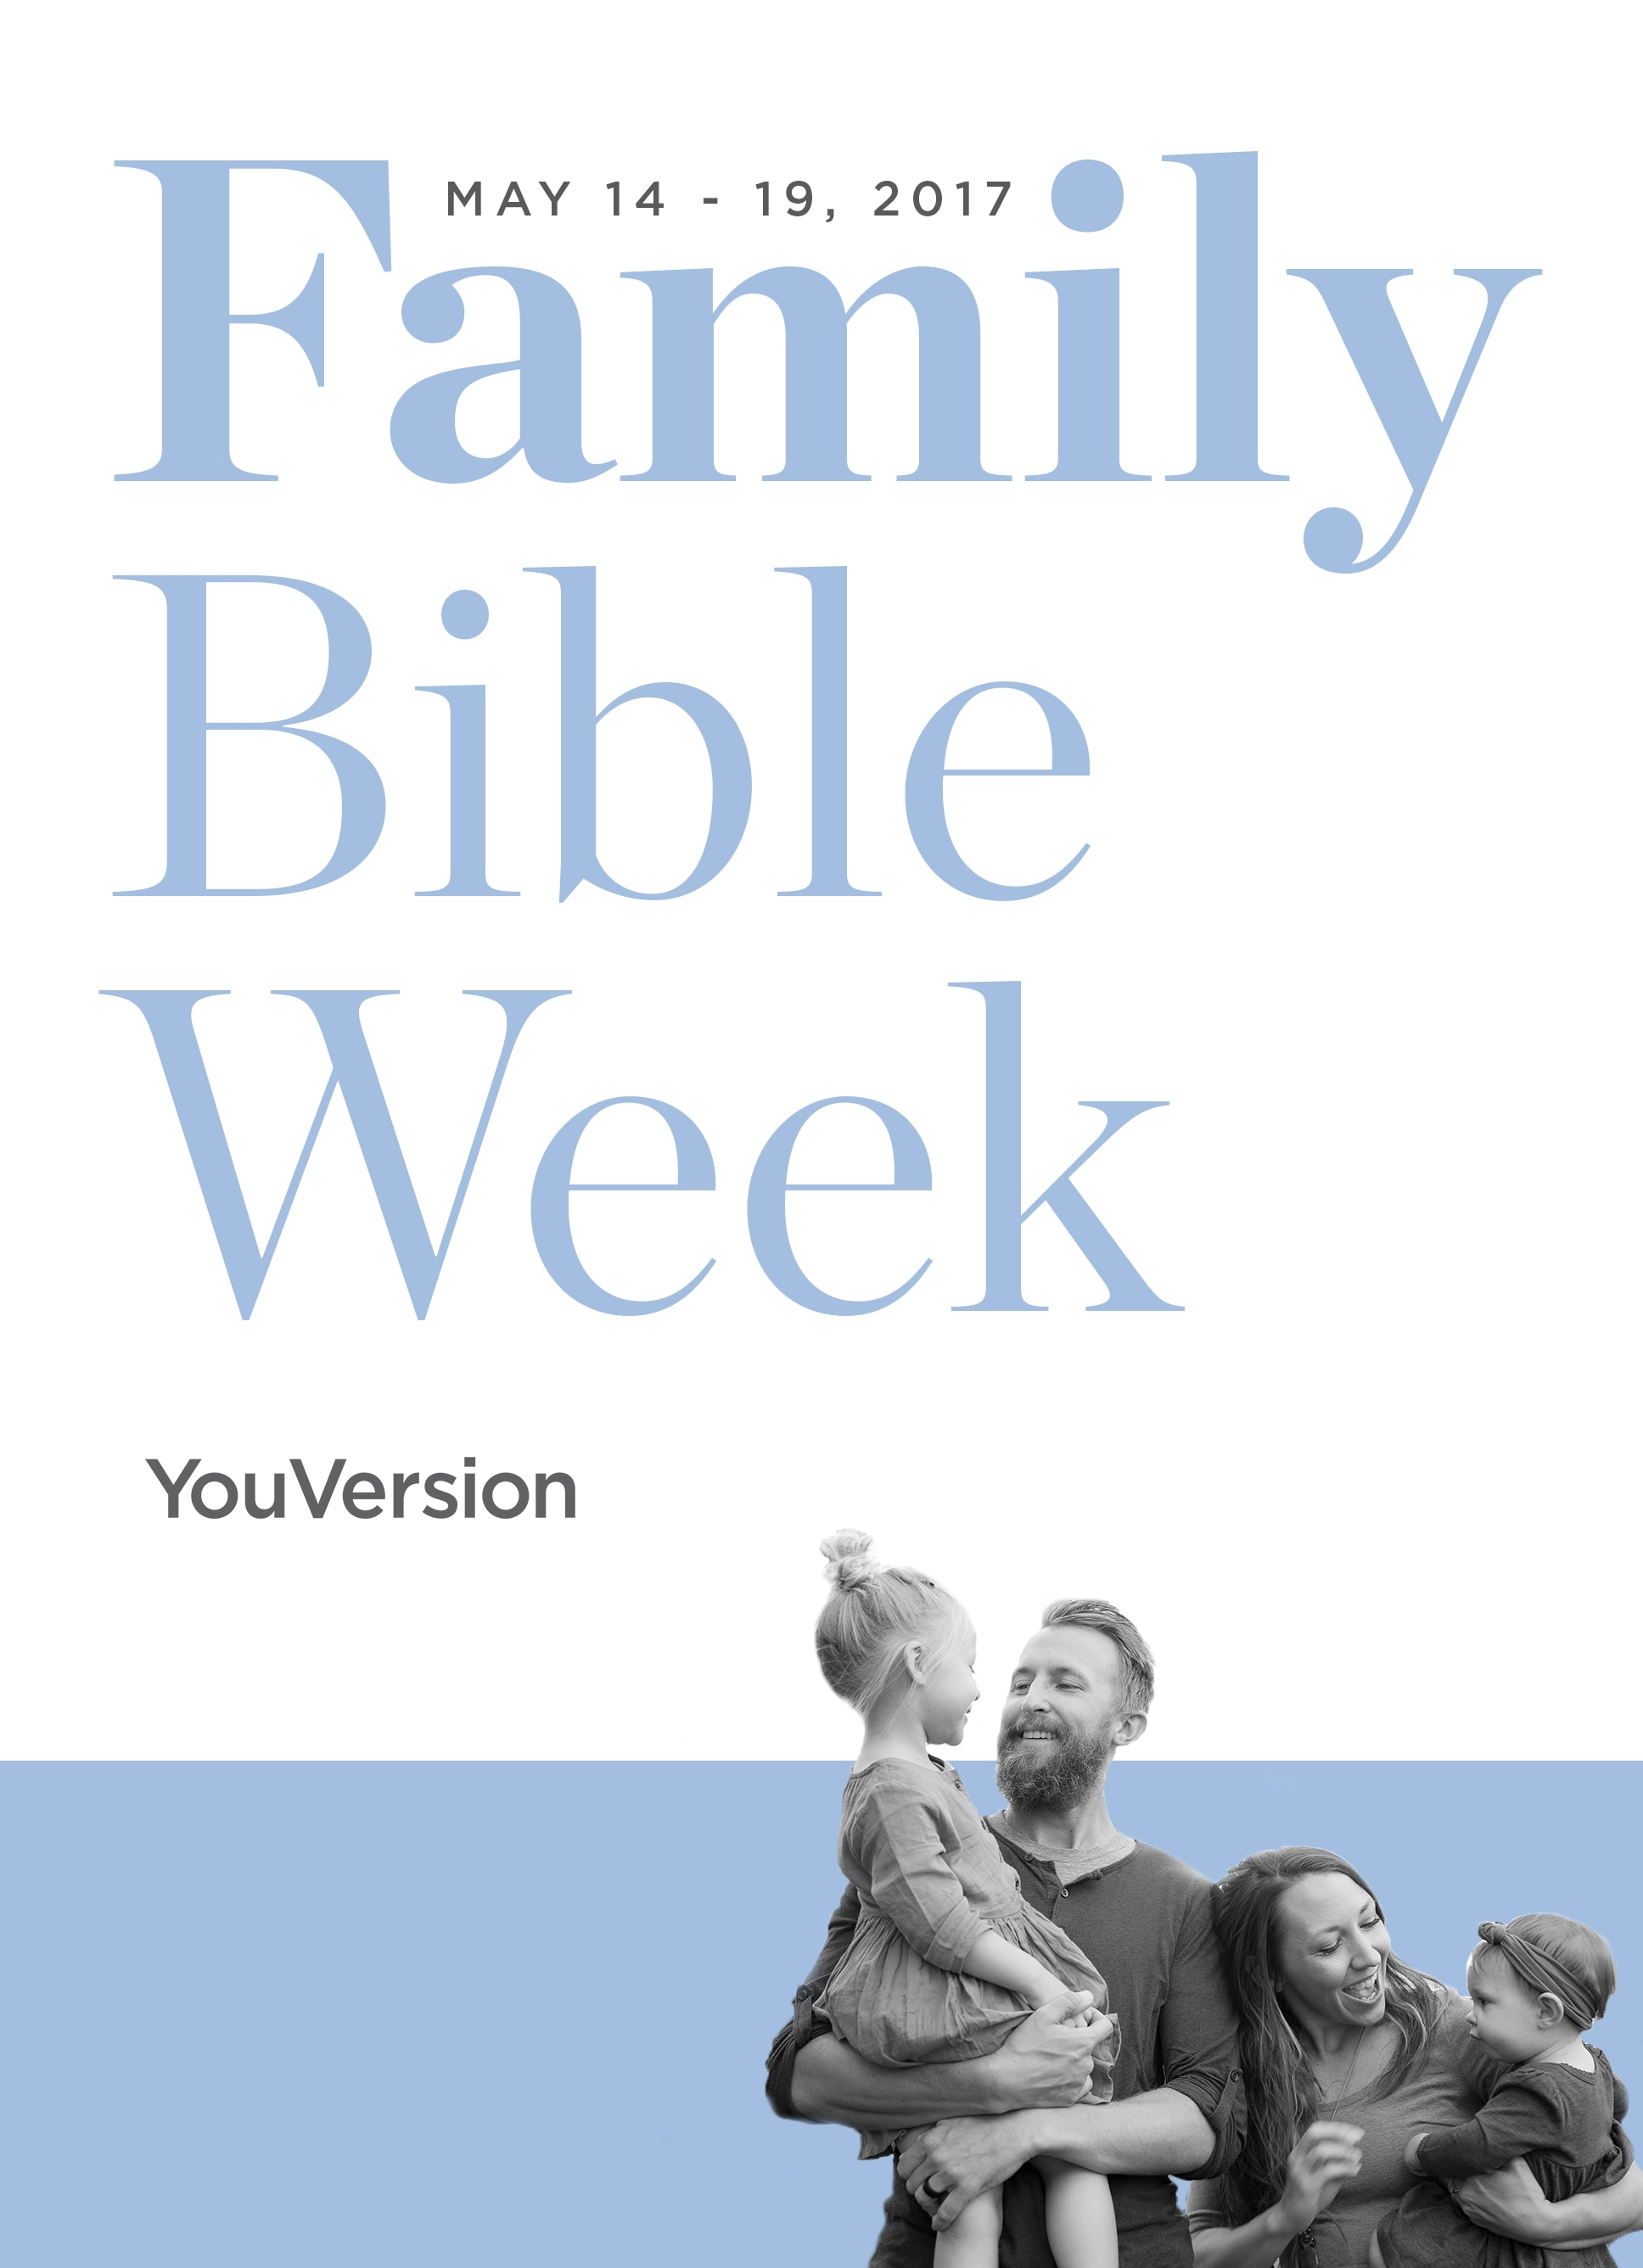 Family Bible Week 2017 Your Family Verse